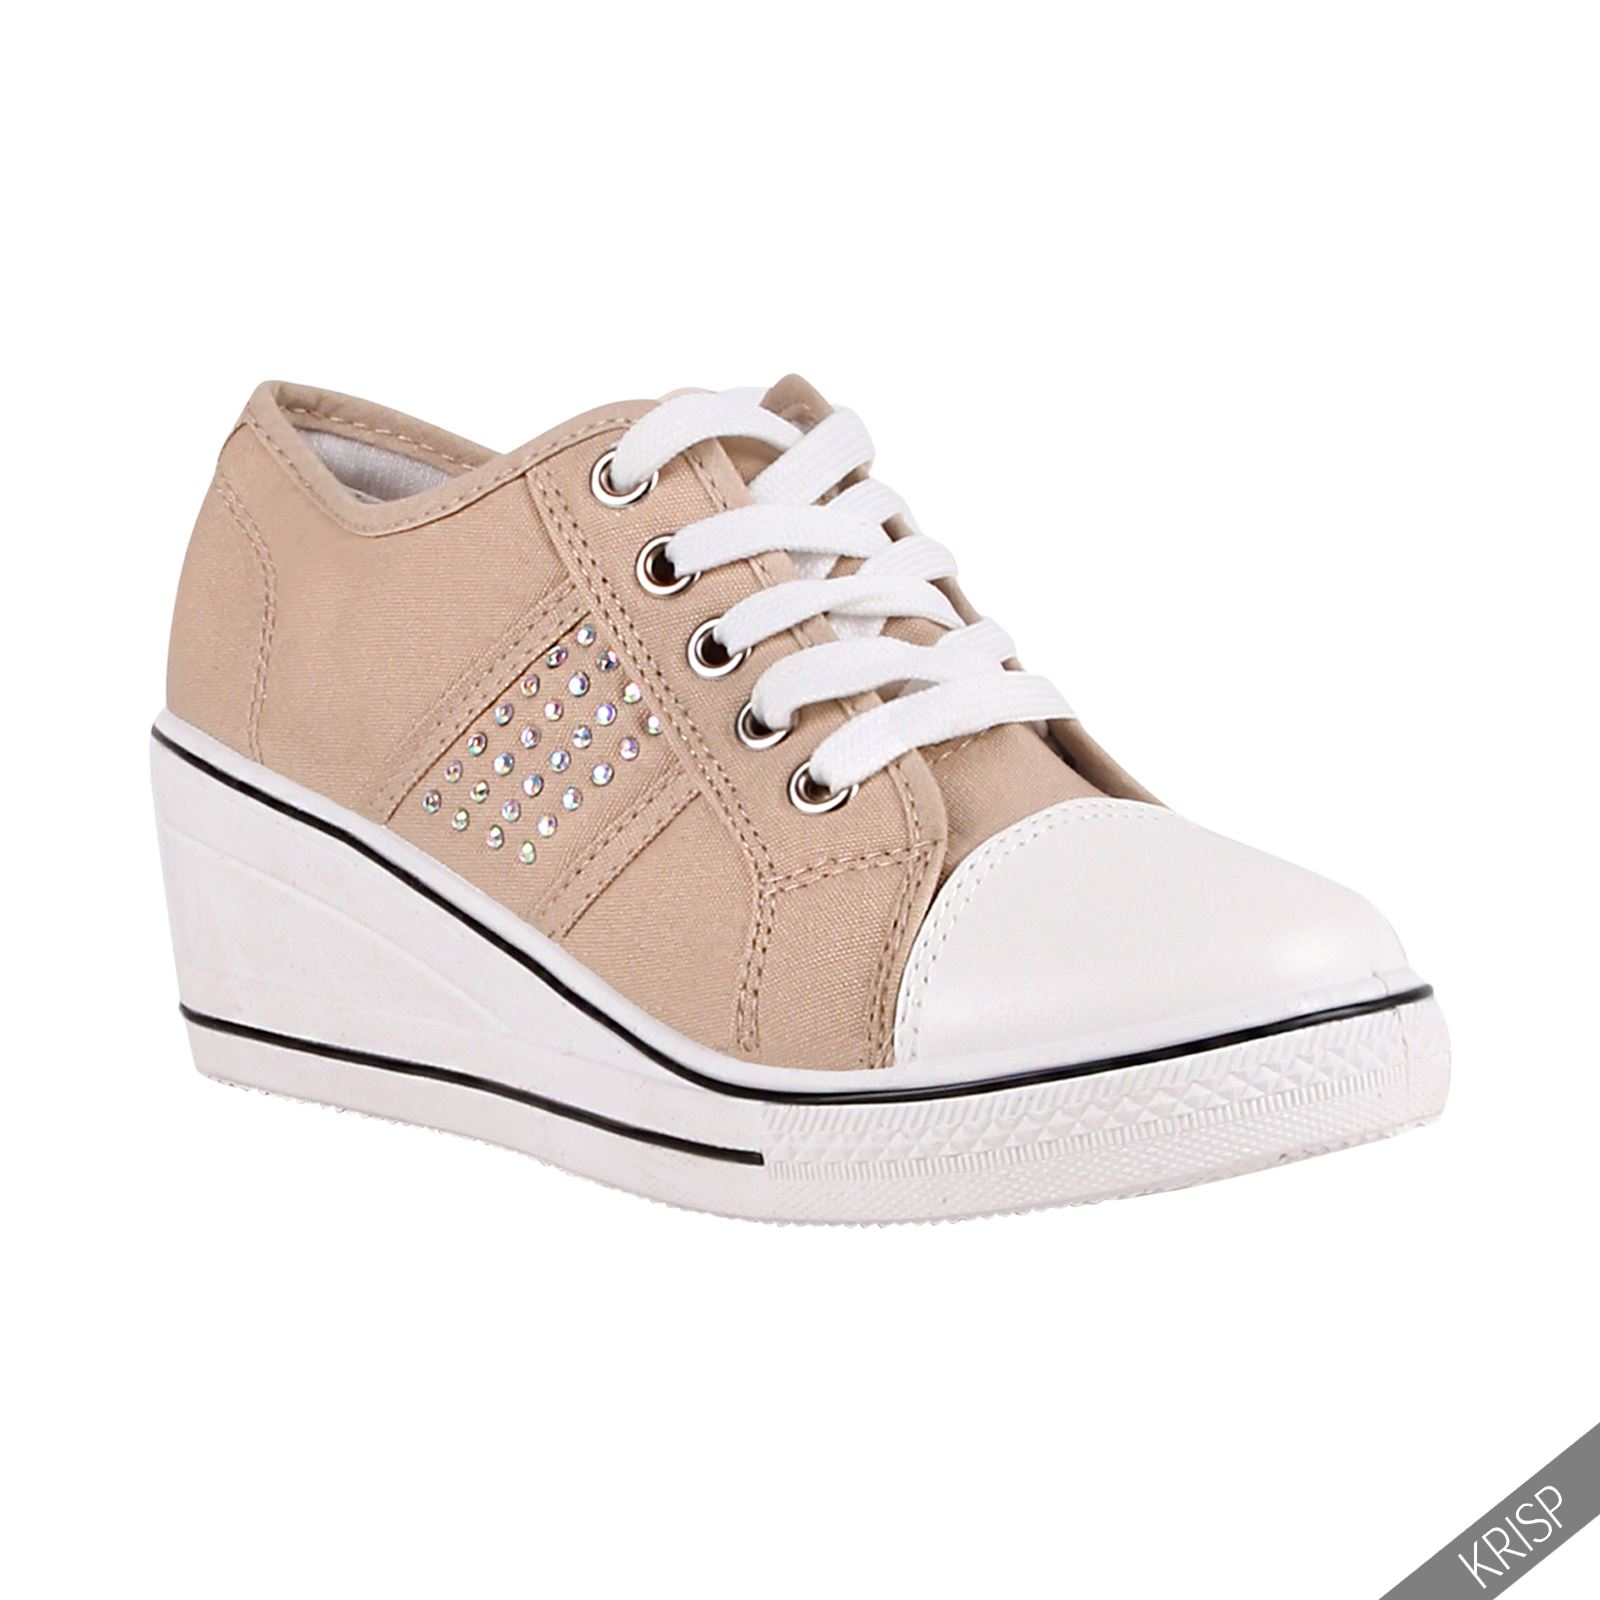 Find womens wedge trainers at ShopStyle. Shop the latest collection of womens wedge trainers from the most popular stores - all in one place.